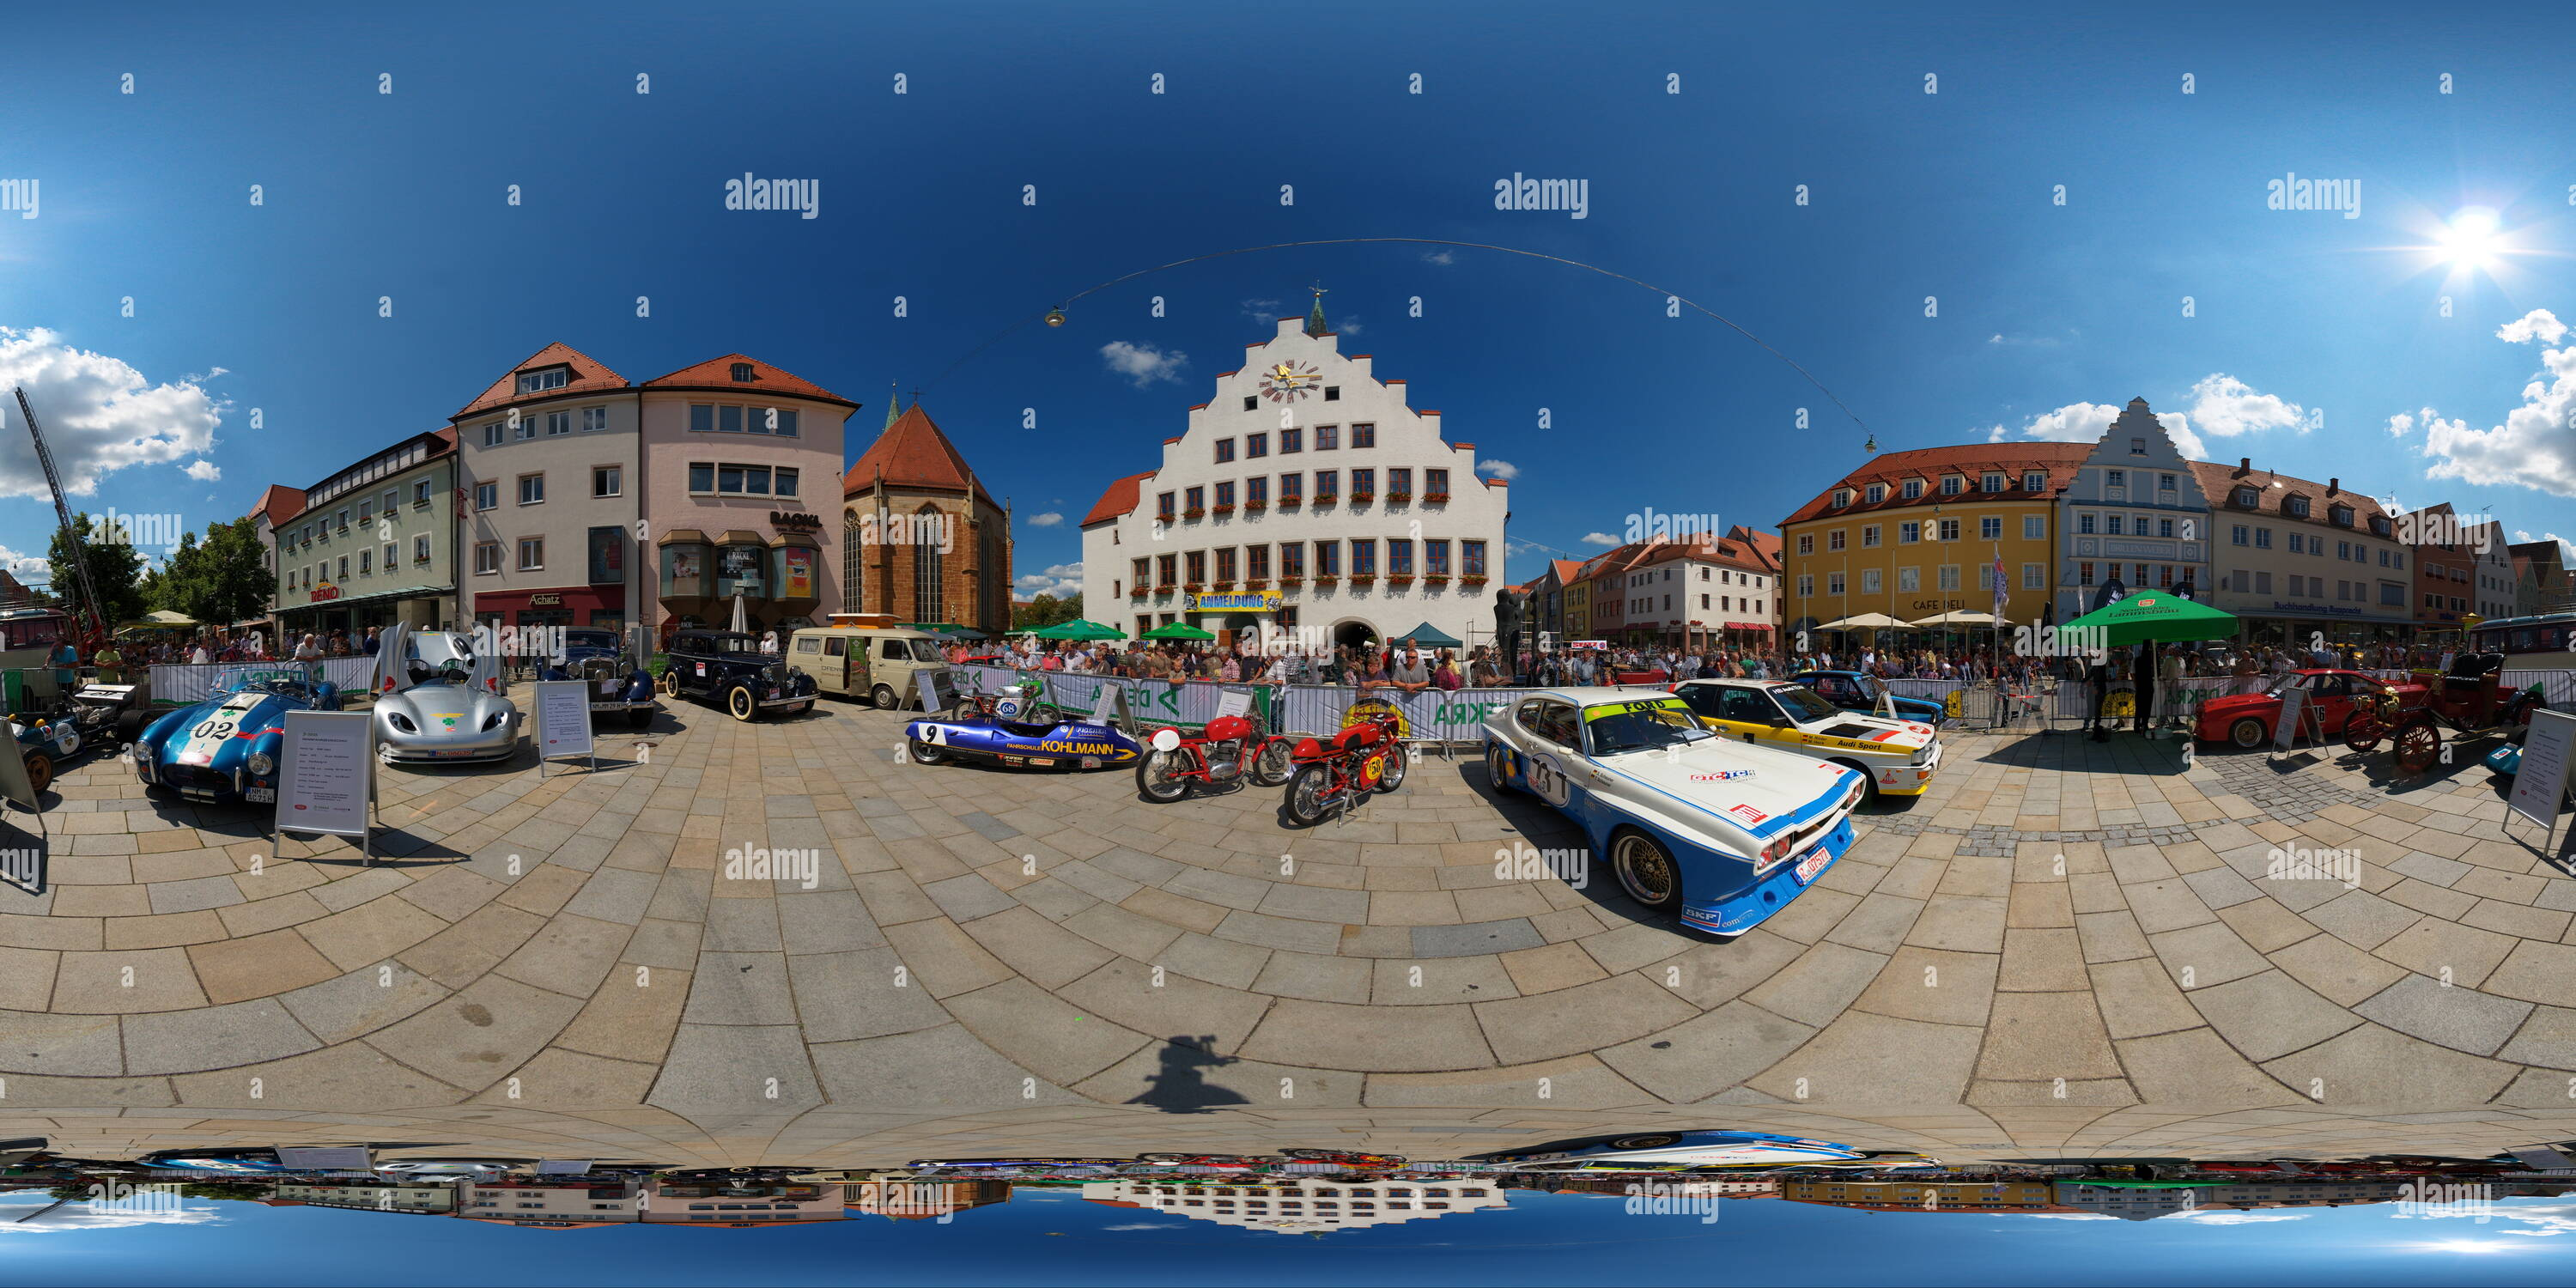 360 degree panoramic view of Rathausplatz Oldtimertreffen Neumarkt 2011